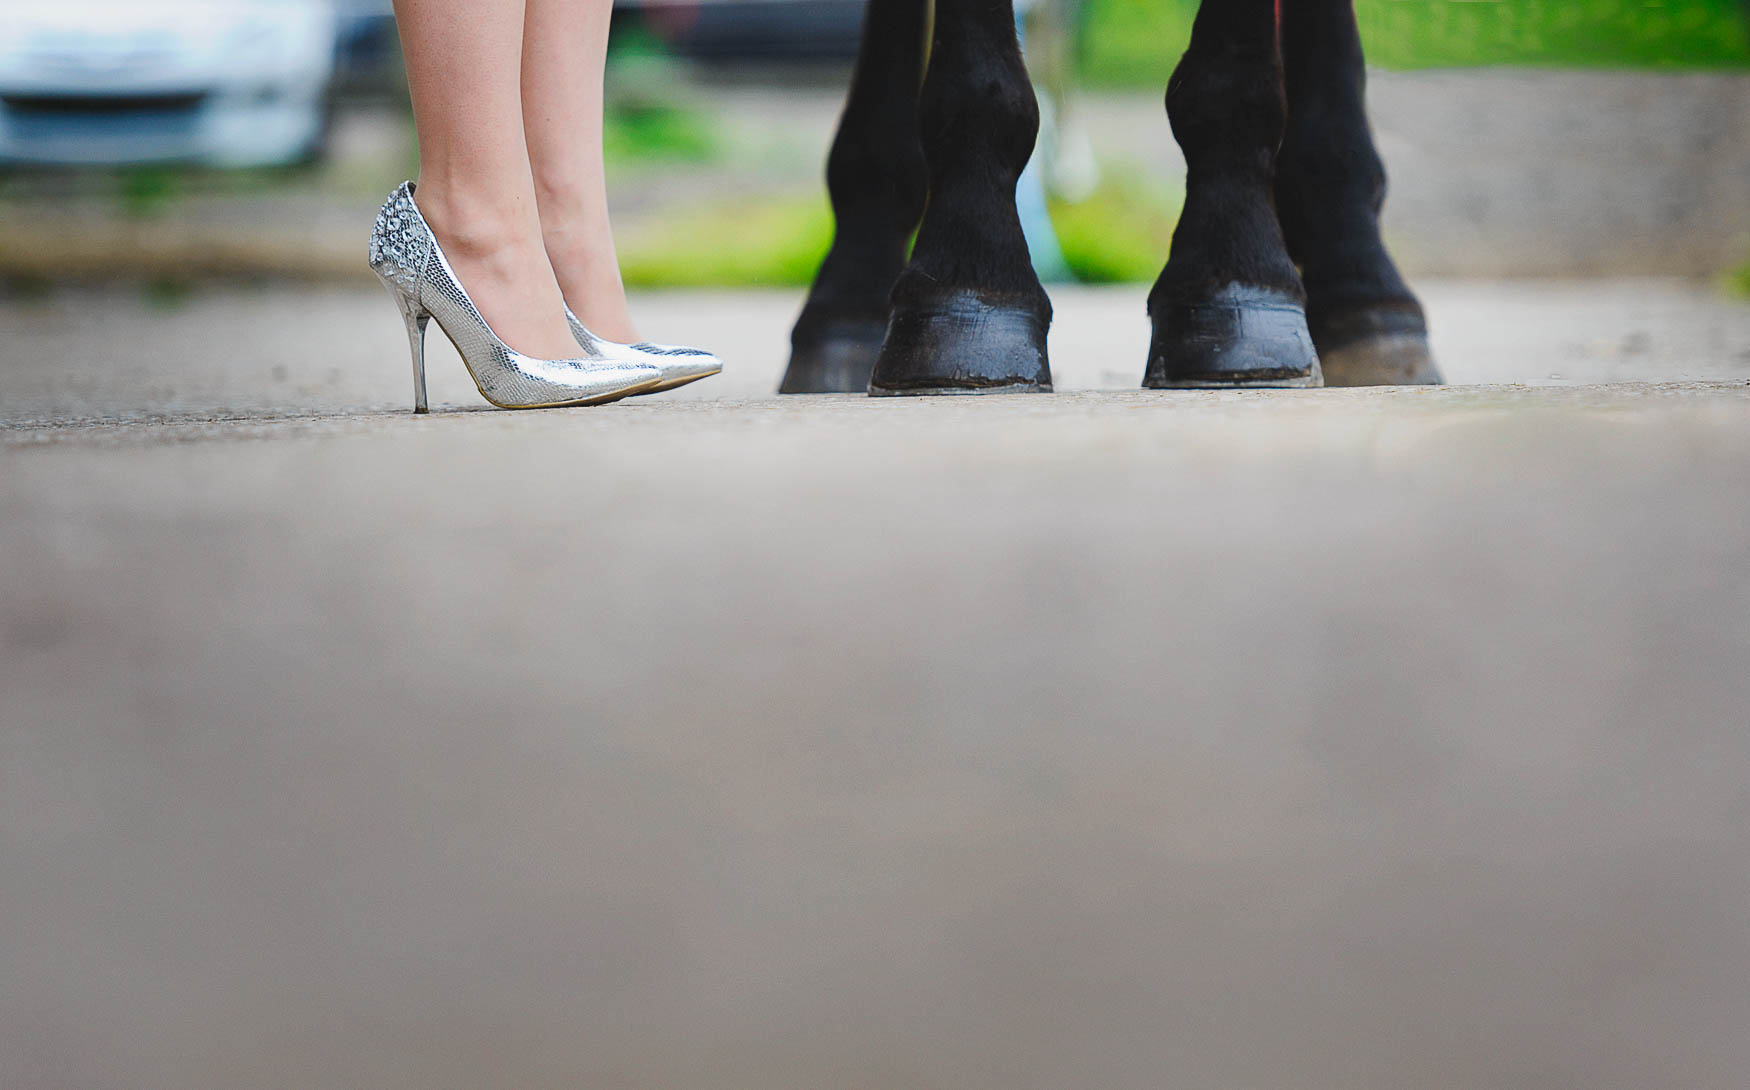 High heeled shoes and horses